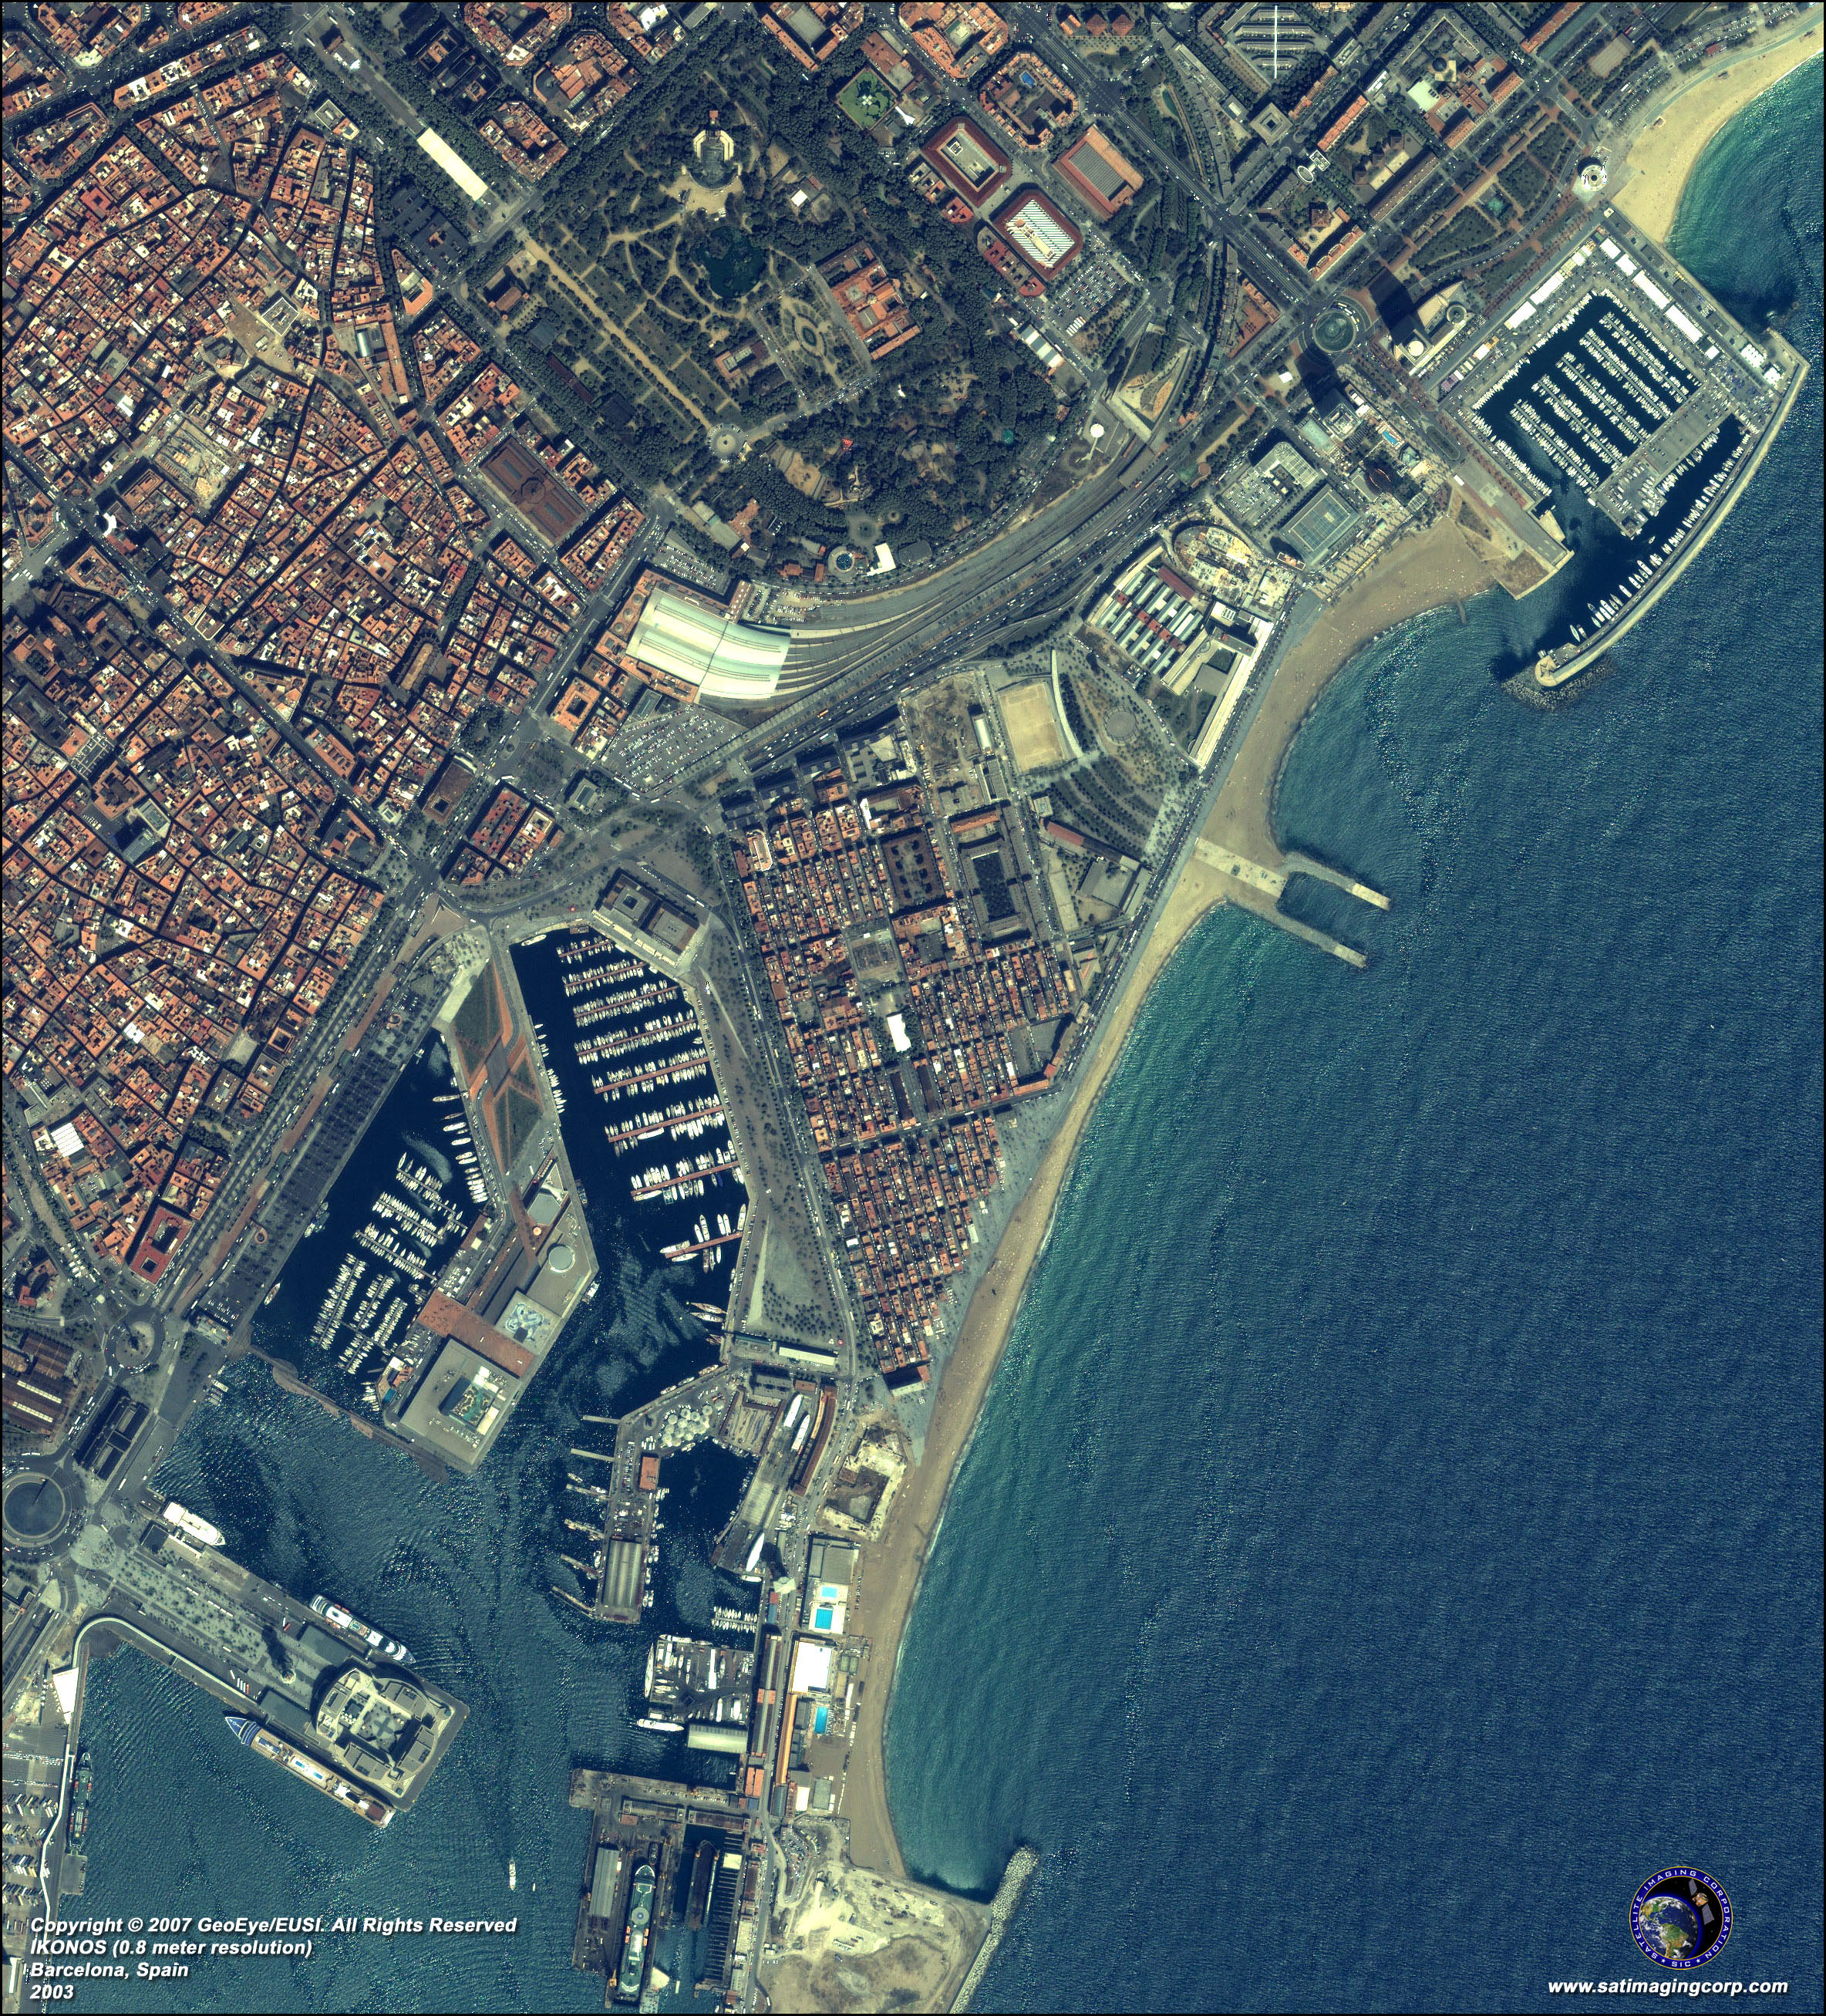 IKONOS Satellite Image of Barcelona  Spain   Satellite Imaging Corp View full resolution image